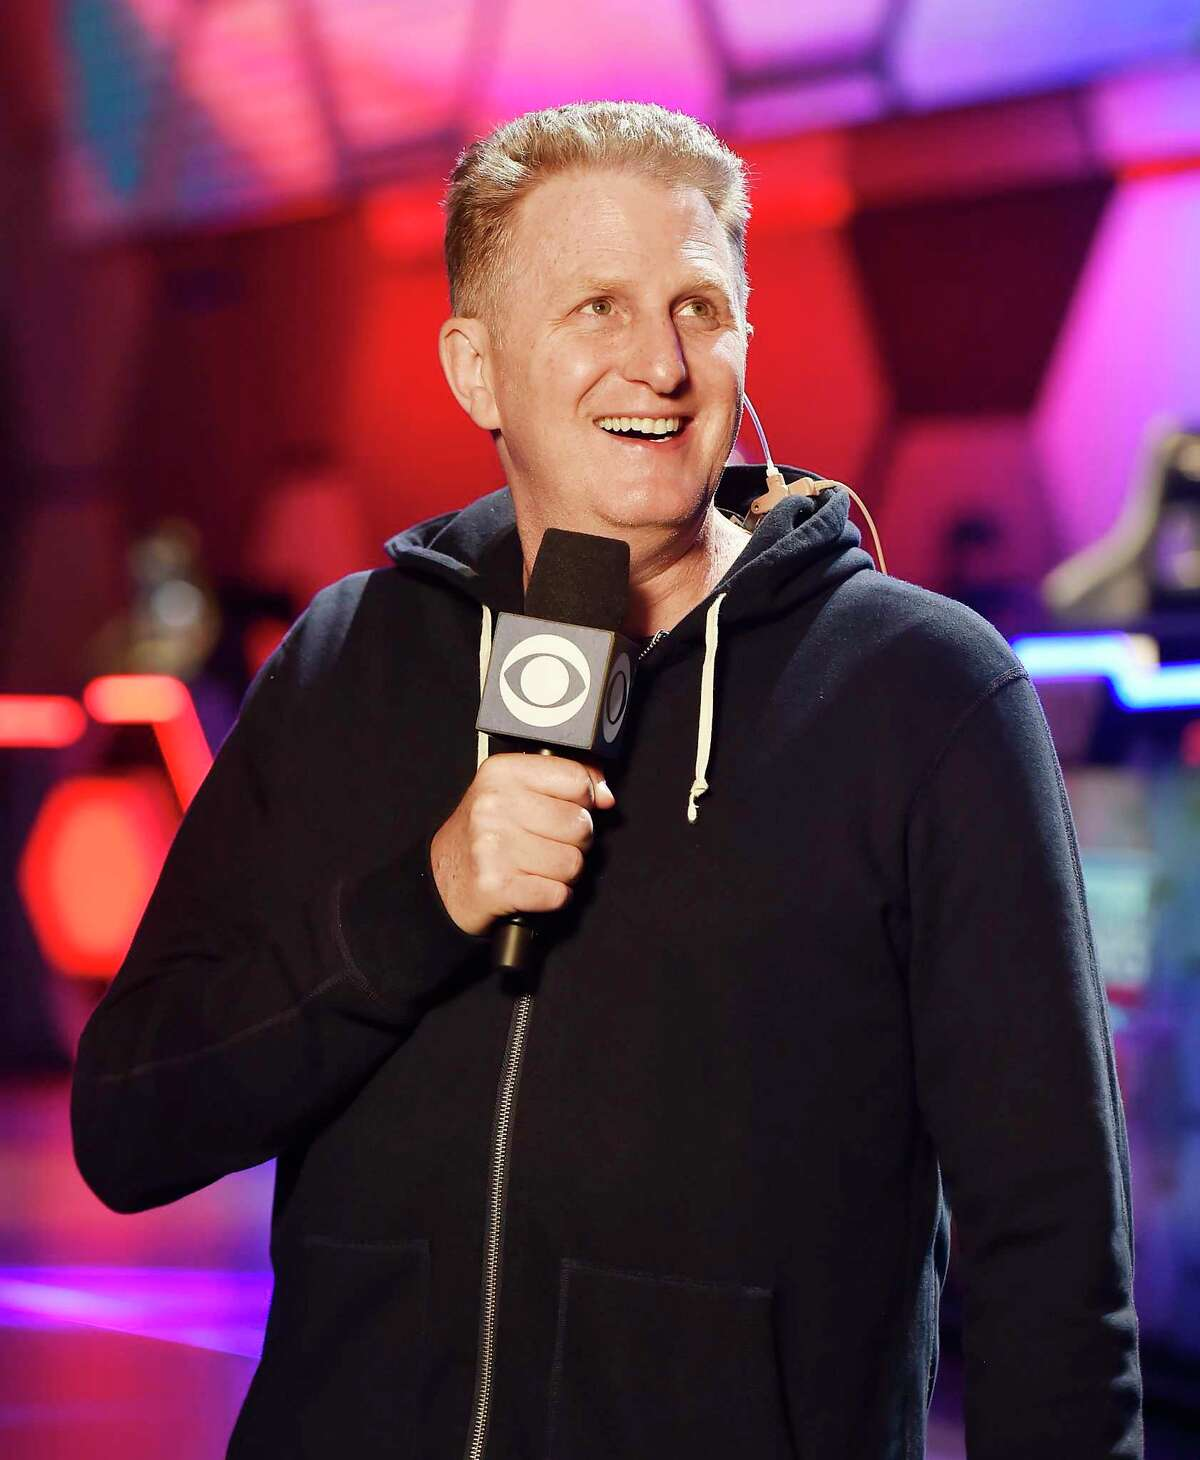 Comedian and actor Michael Rapaport is performing five stand-up shows at Bridgeport's Stress Factory Feb. 13-15.